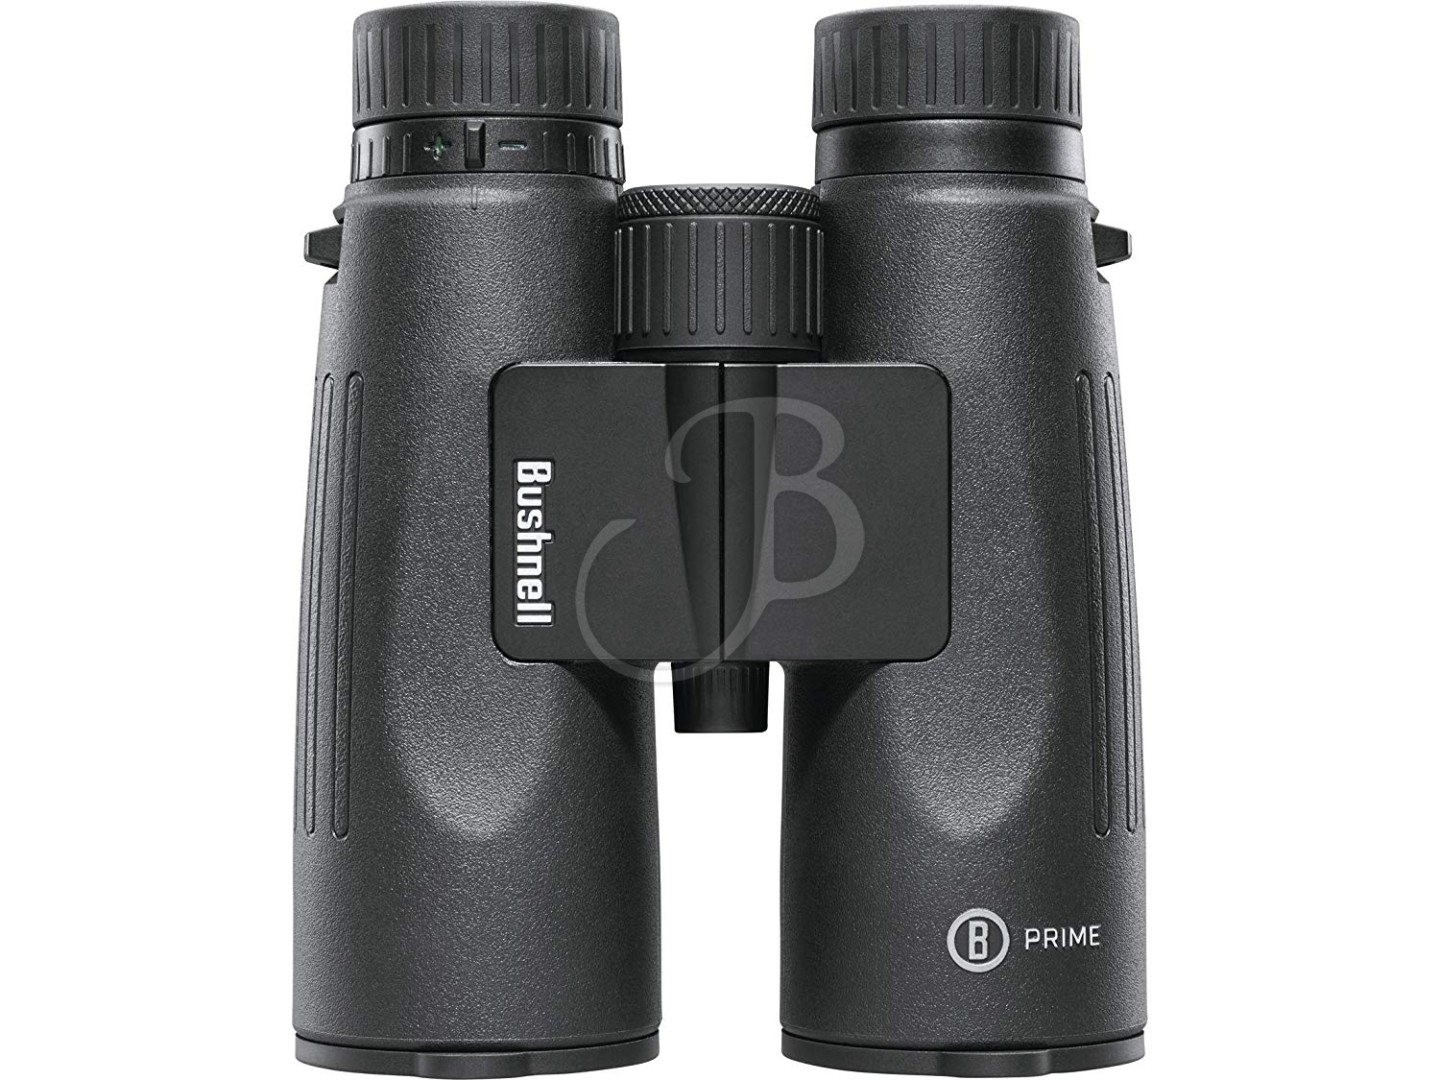 Bushnell Binocolo PRIME 12X50 WATERPROOF BLACK